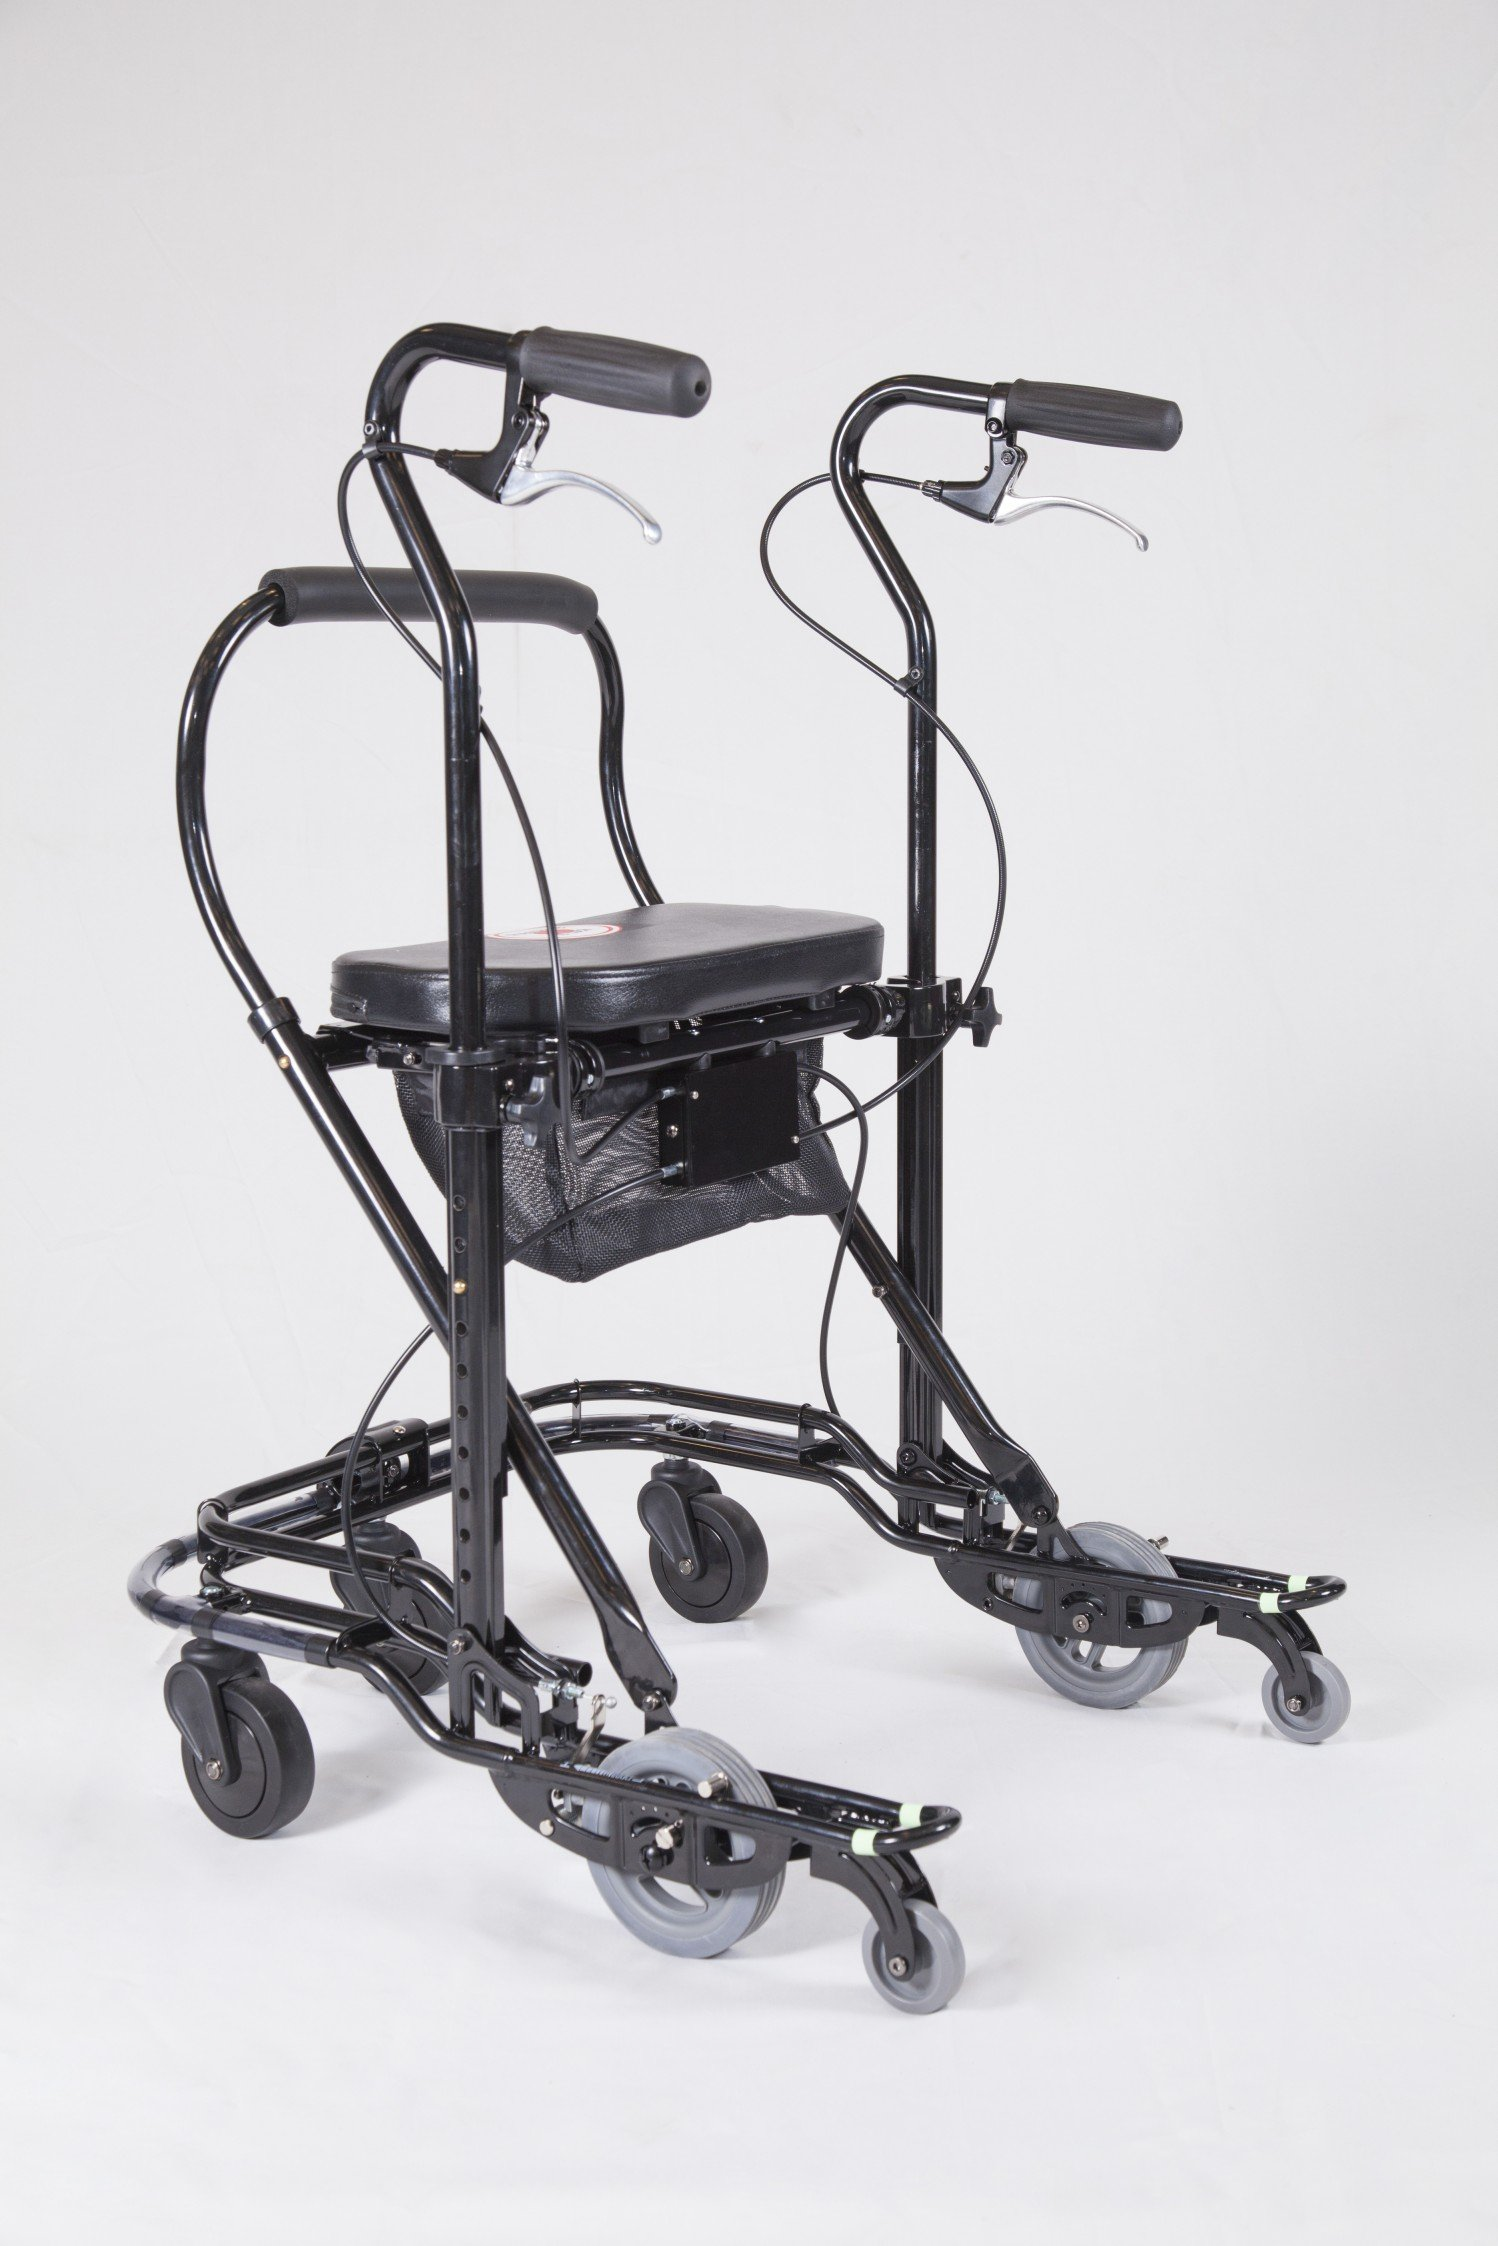 U-Step 2 Walker or cane